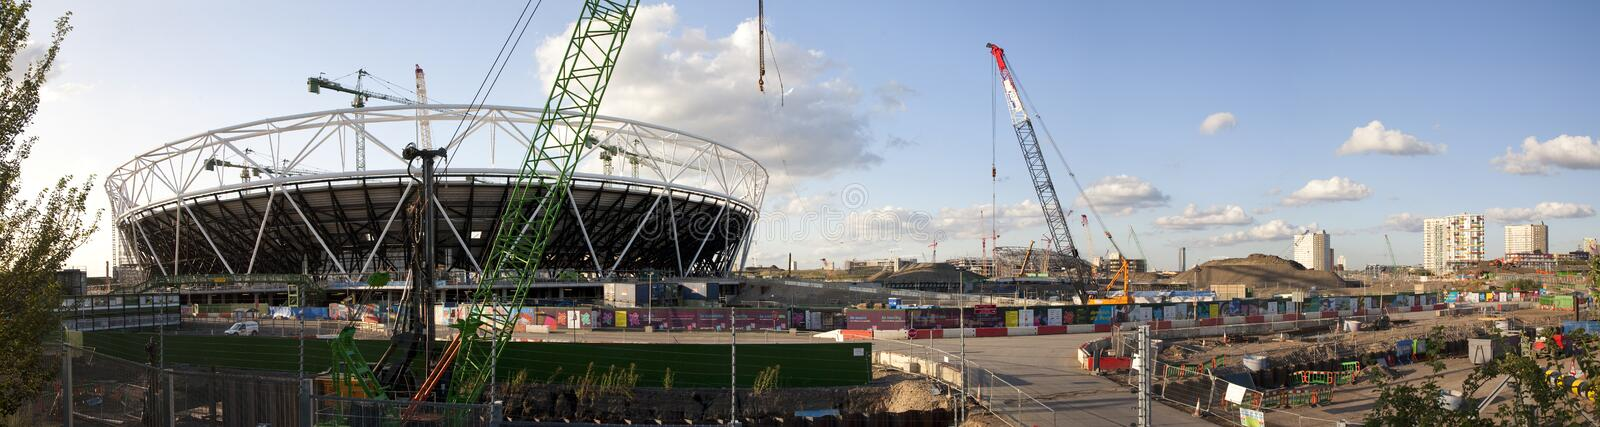 Download Olympic Stadium Construction Site Panoramic Editorial Image - Image: 21010350